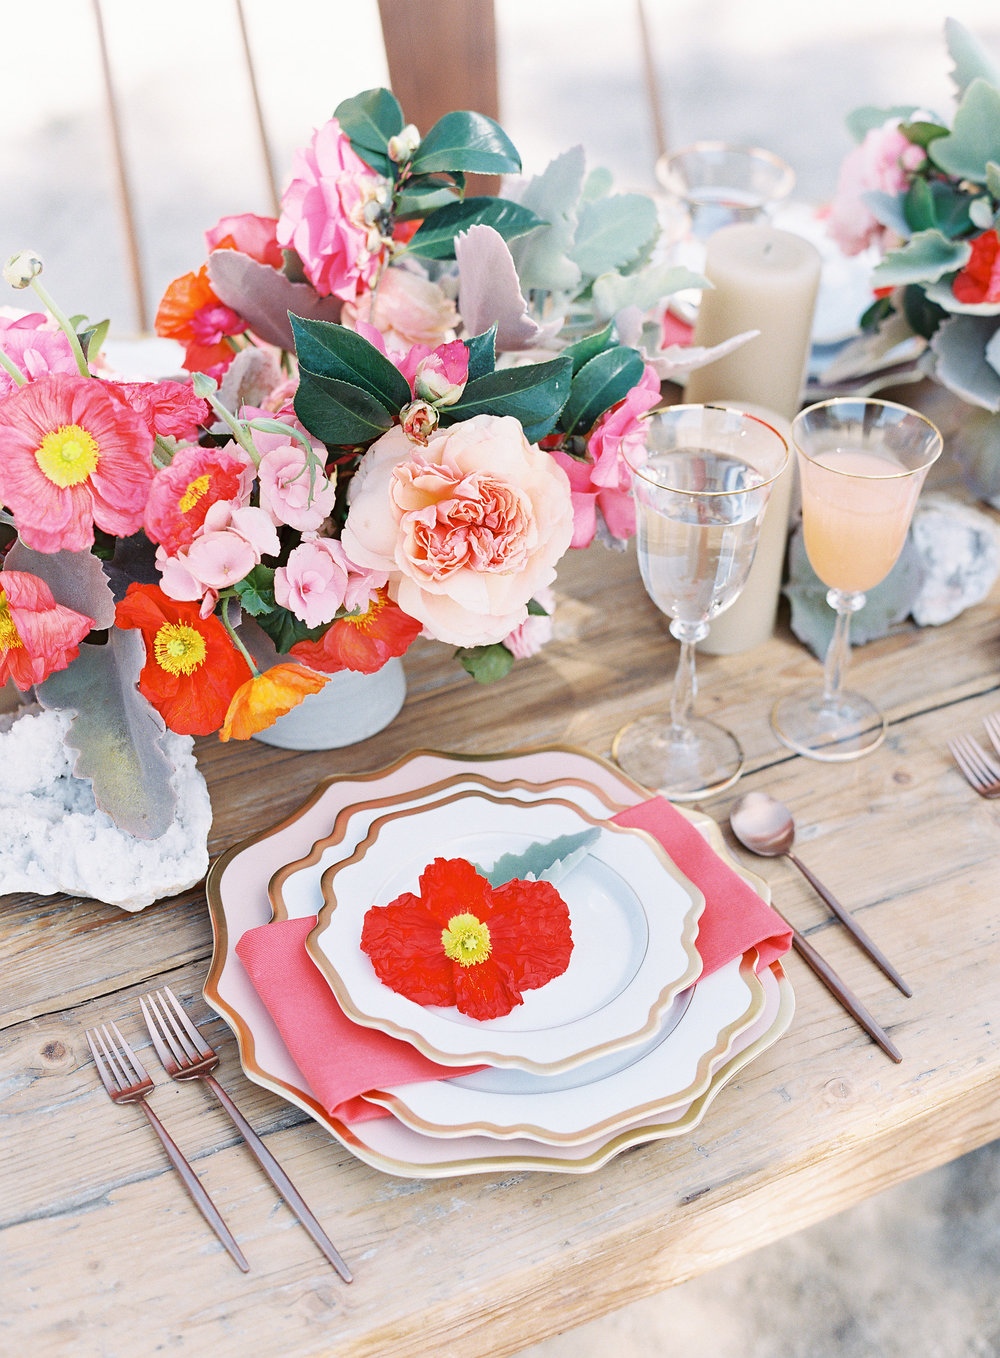 Tablescape_©_Oliver_Fly_Photography_15.jpg